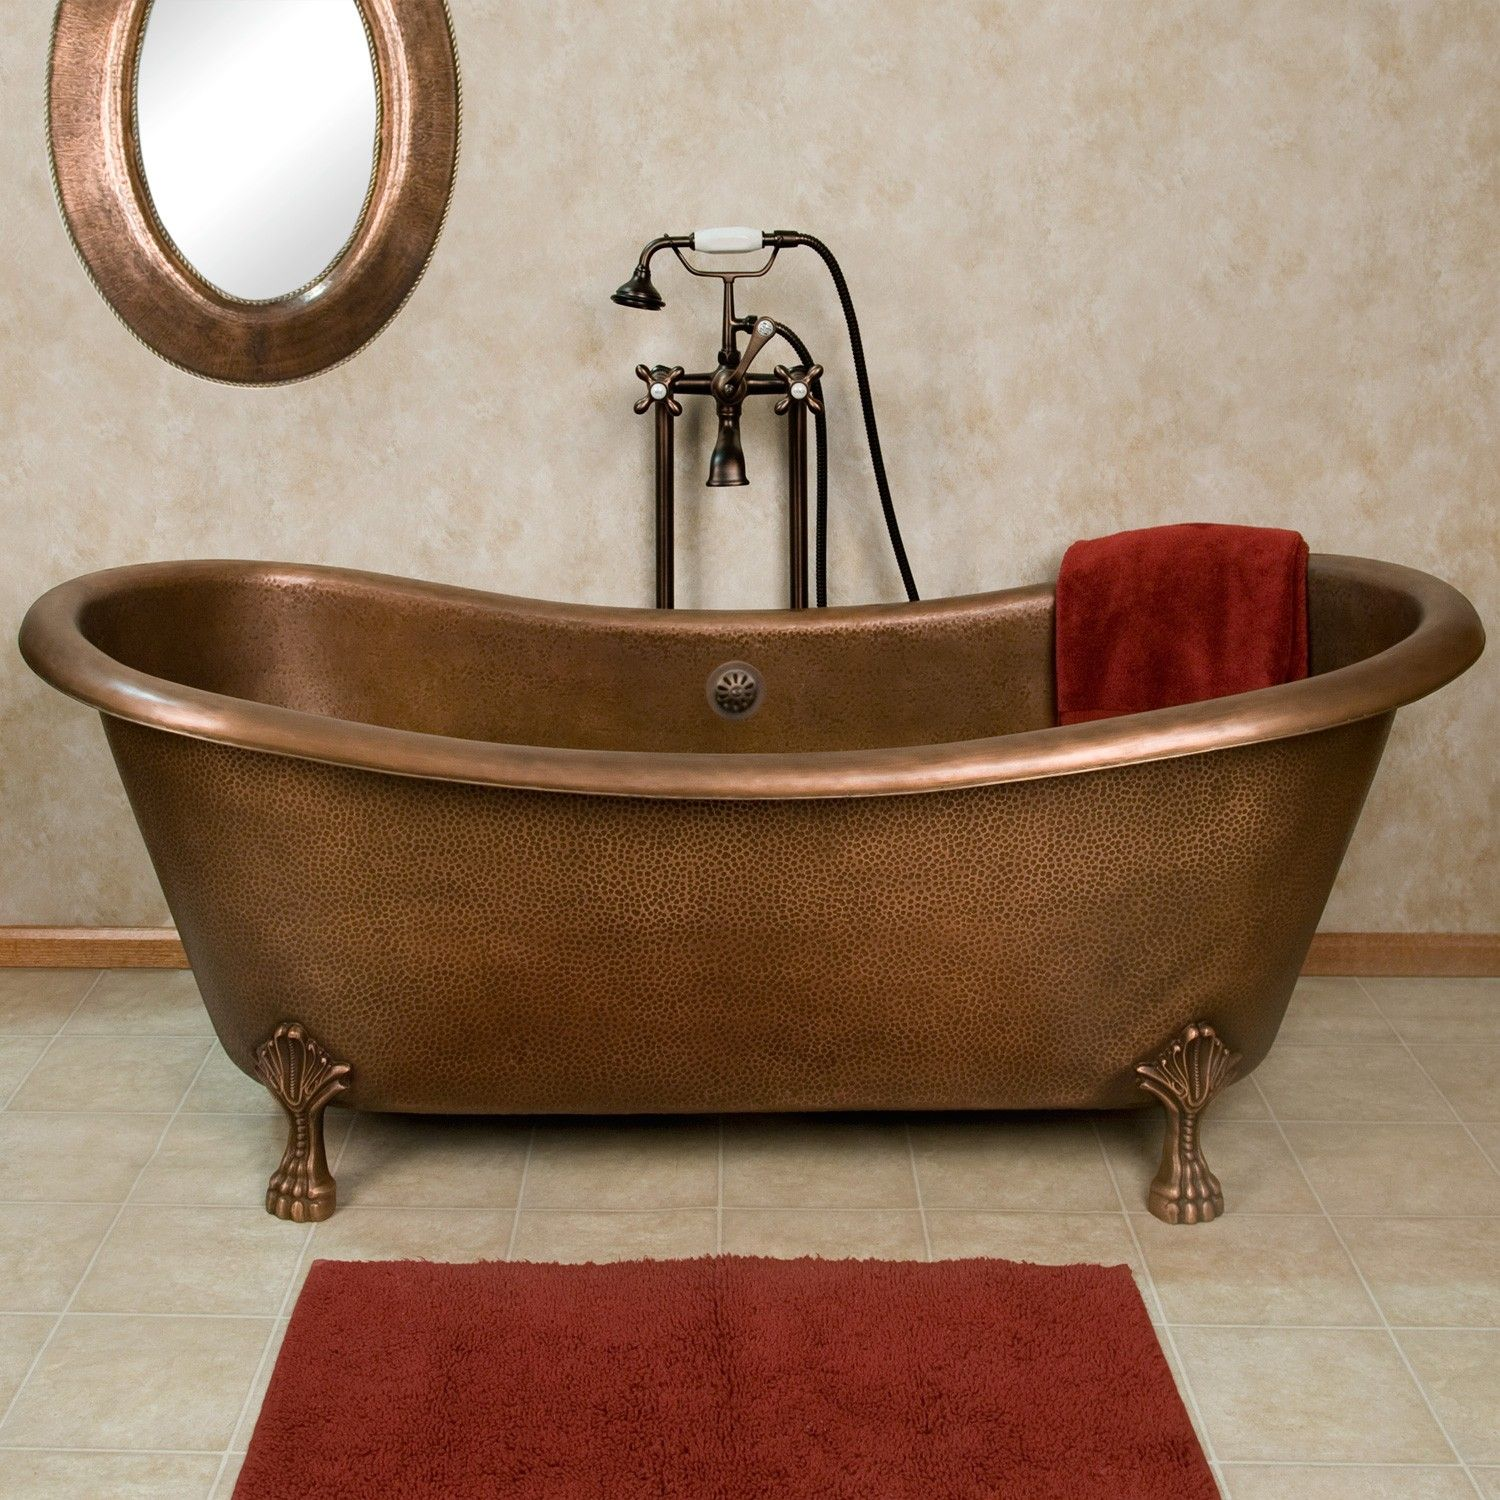 Josette Copper Double Slipper Clawfoot Tub Tubs Bathtubs and Bath